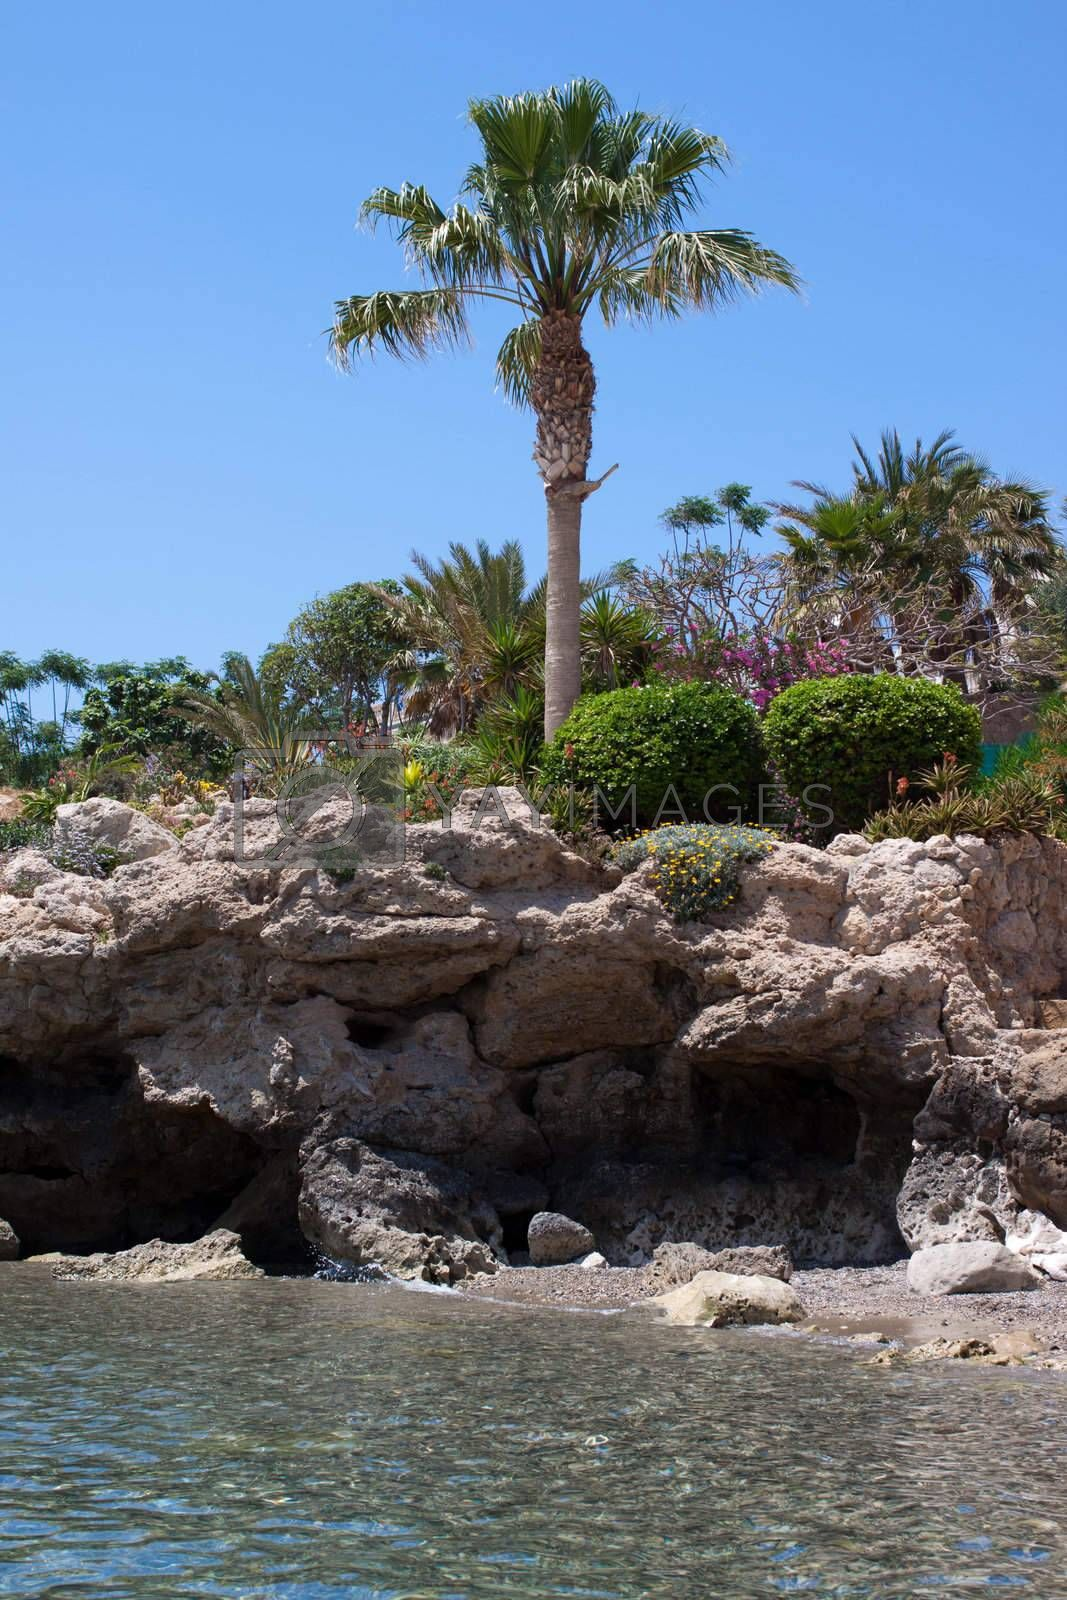 palm trees and flowers on a rocky seashore